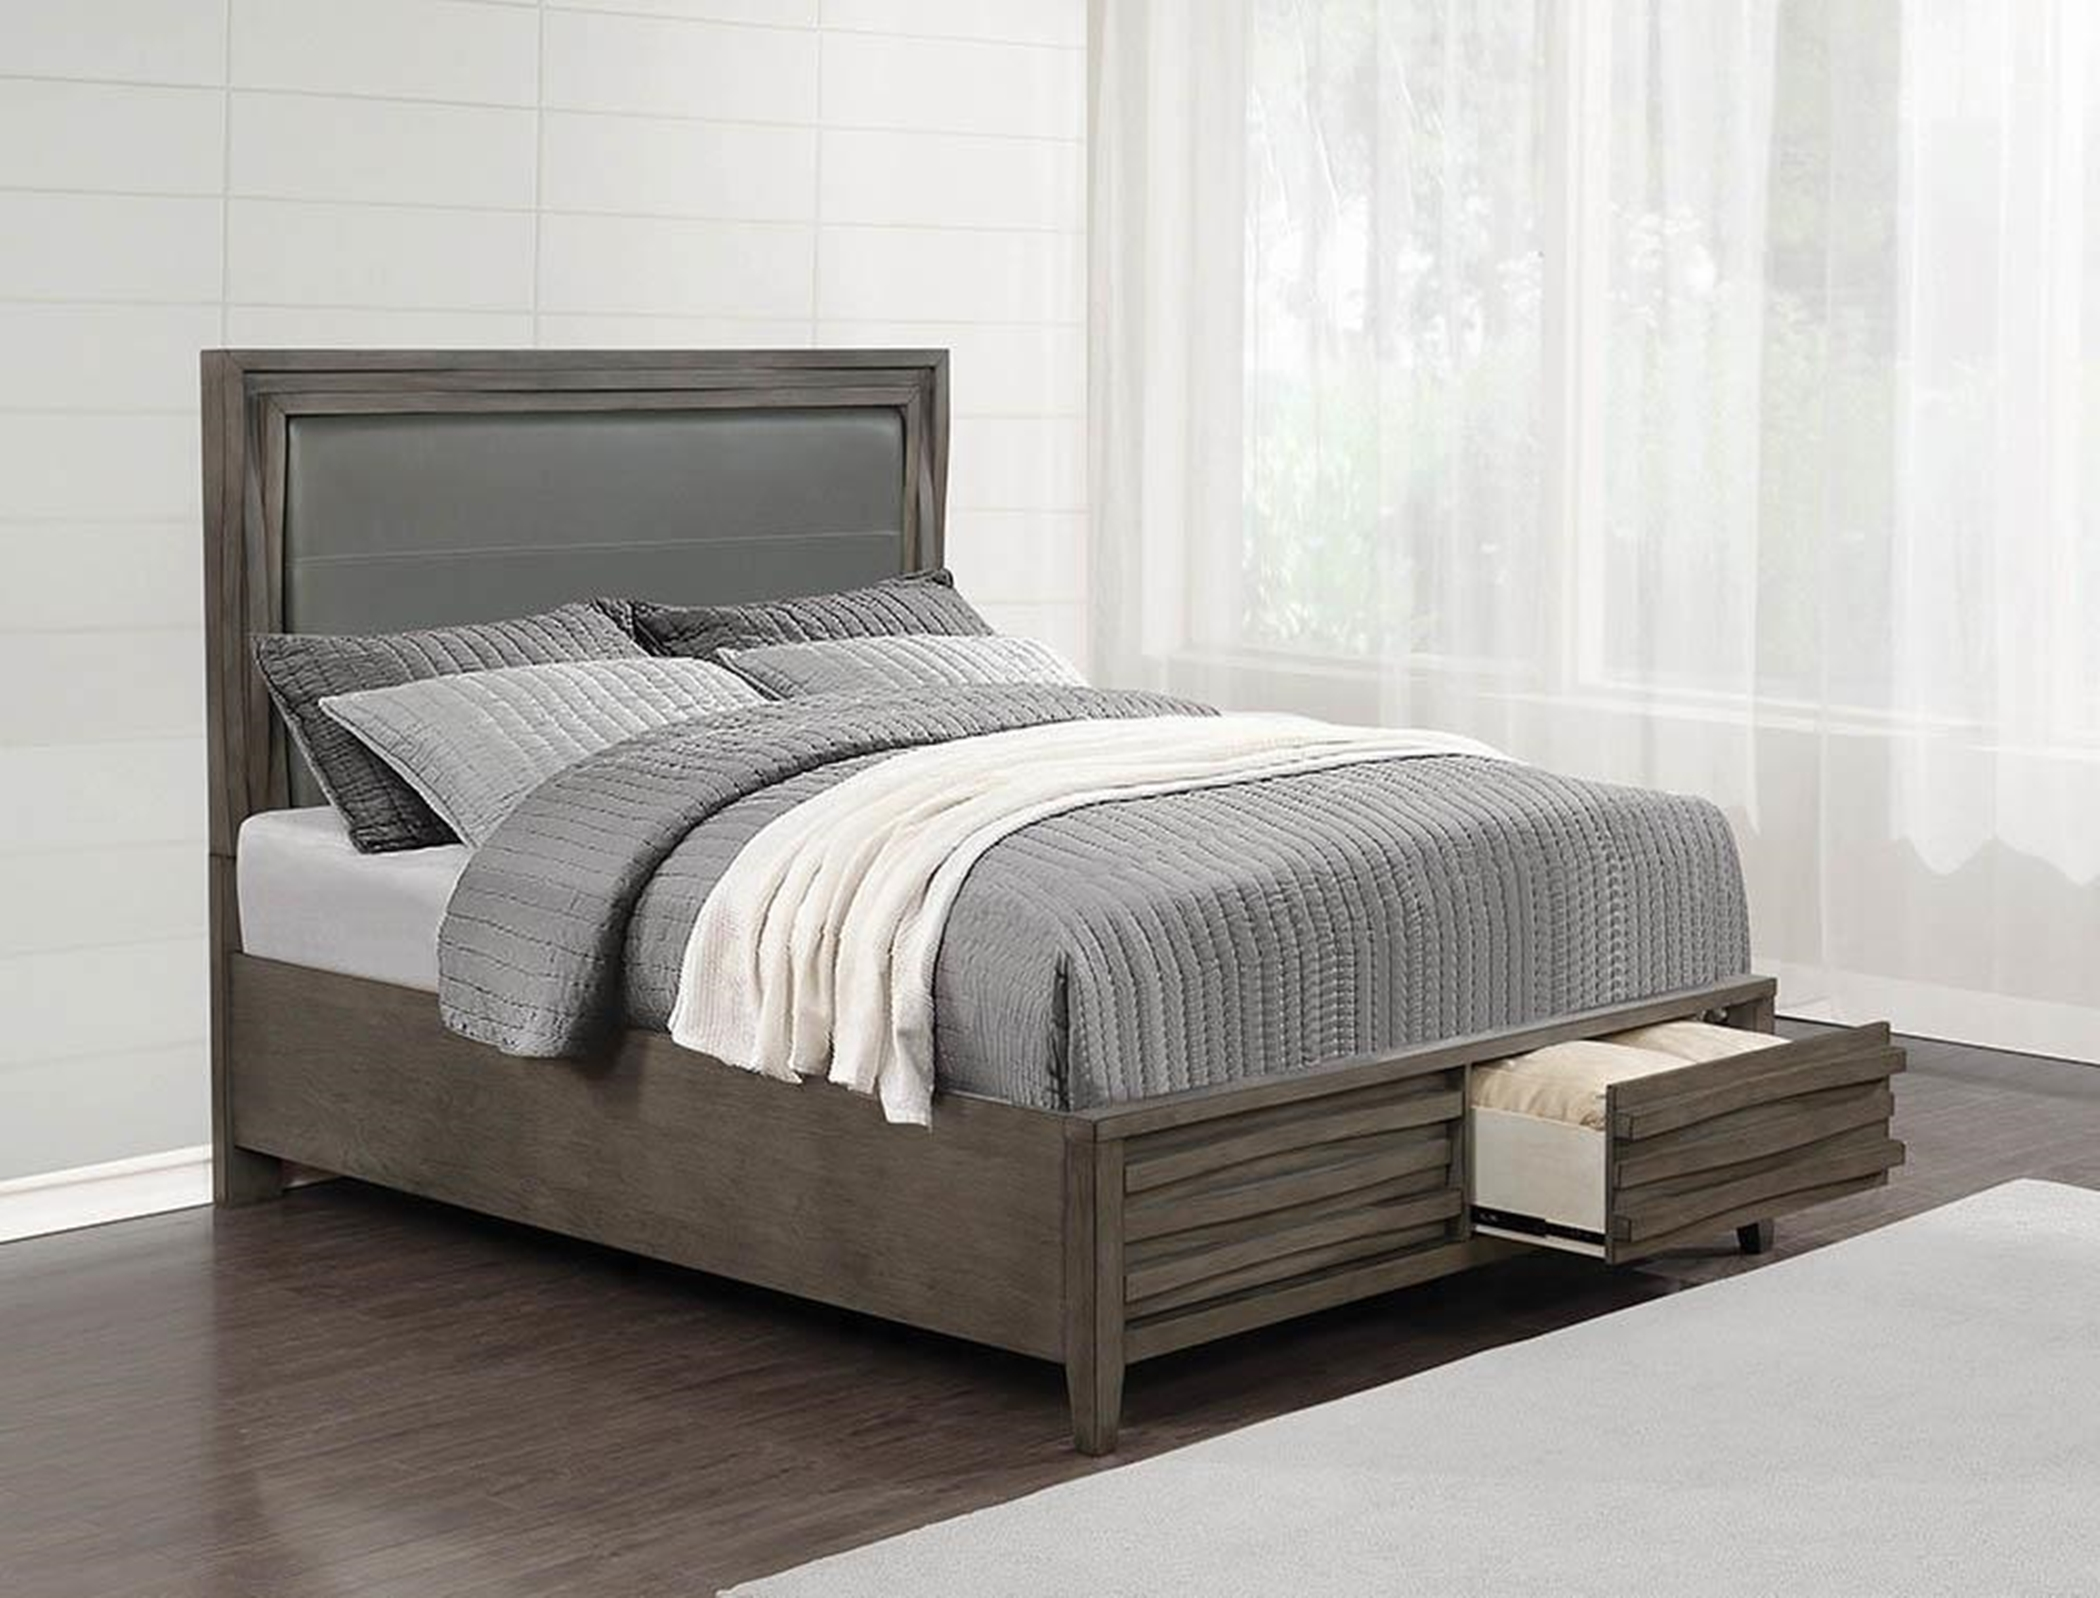 222620KW - C King Bed